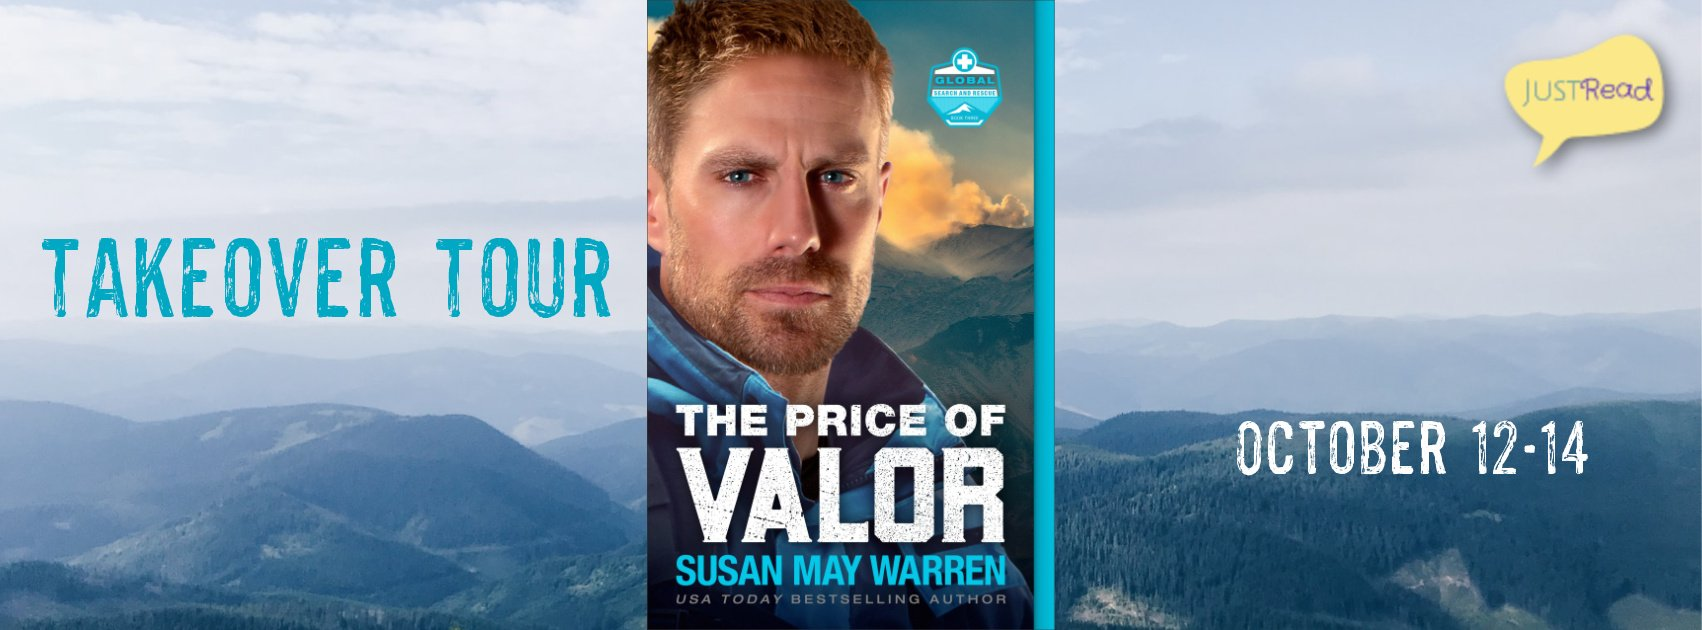 The Price of Valor JustRead Takeover Tour